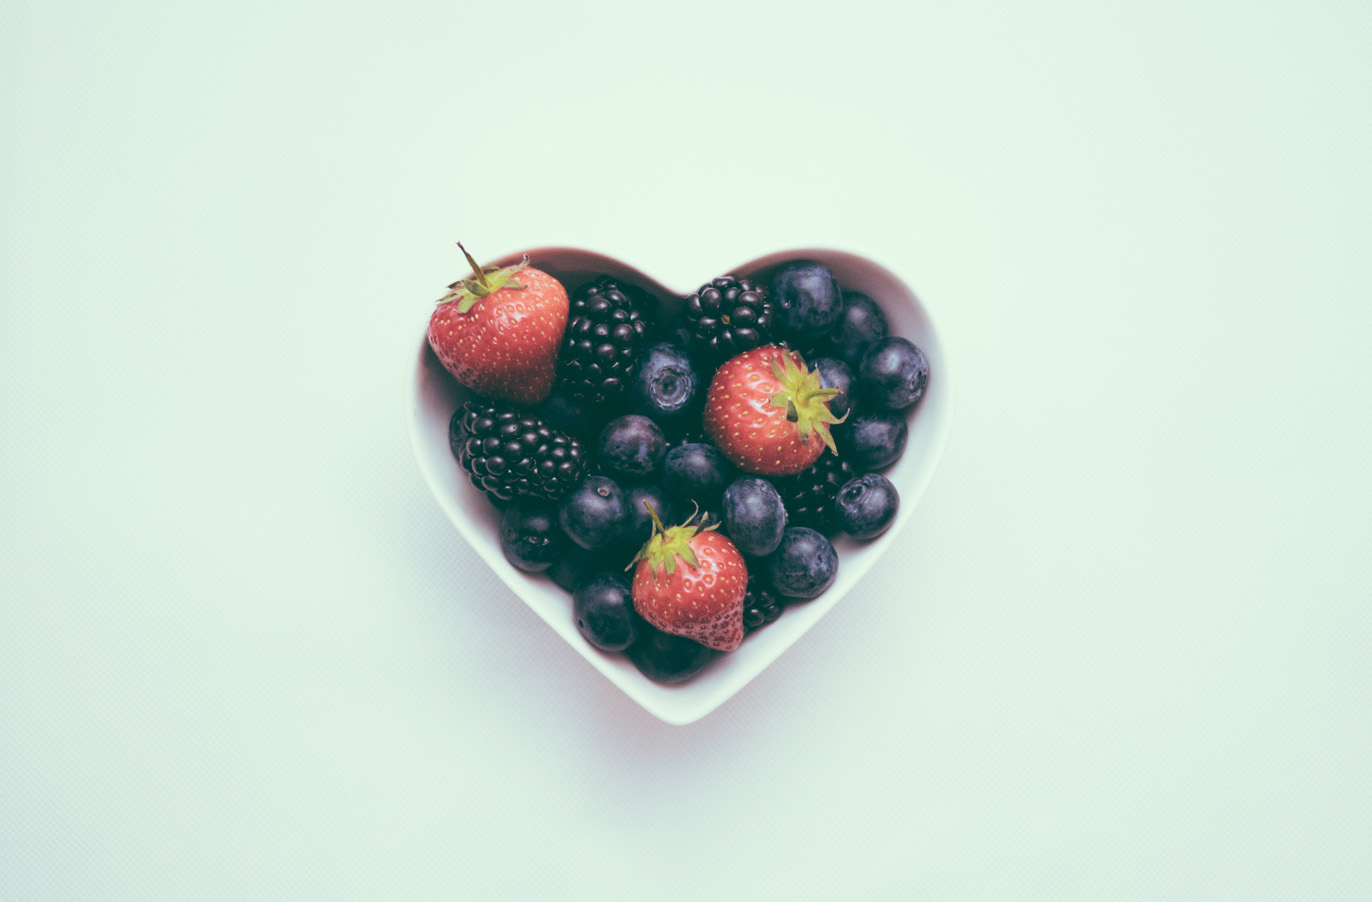 berries in a heart shaped bowl on a teal background